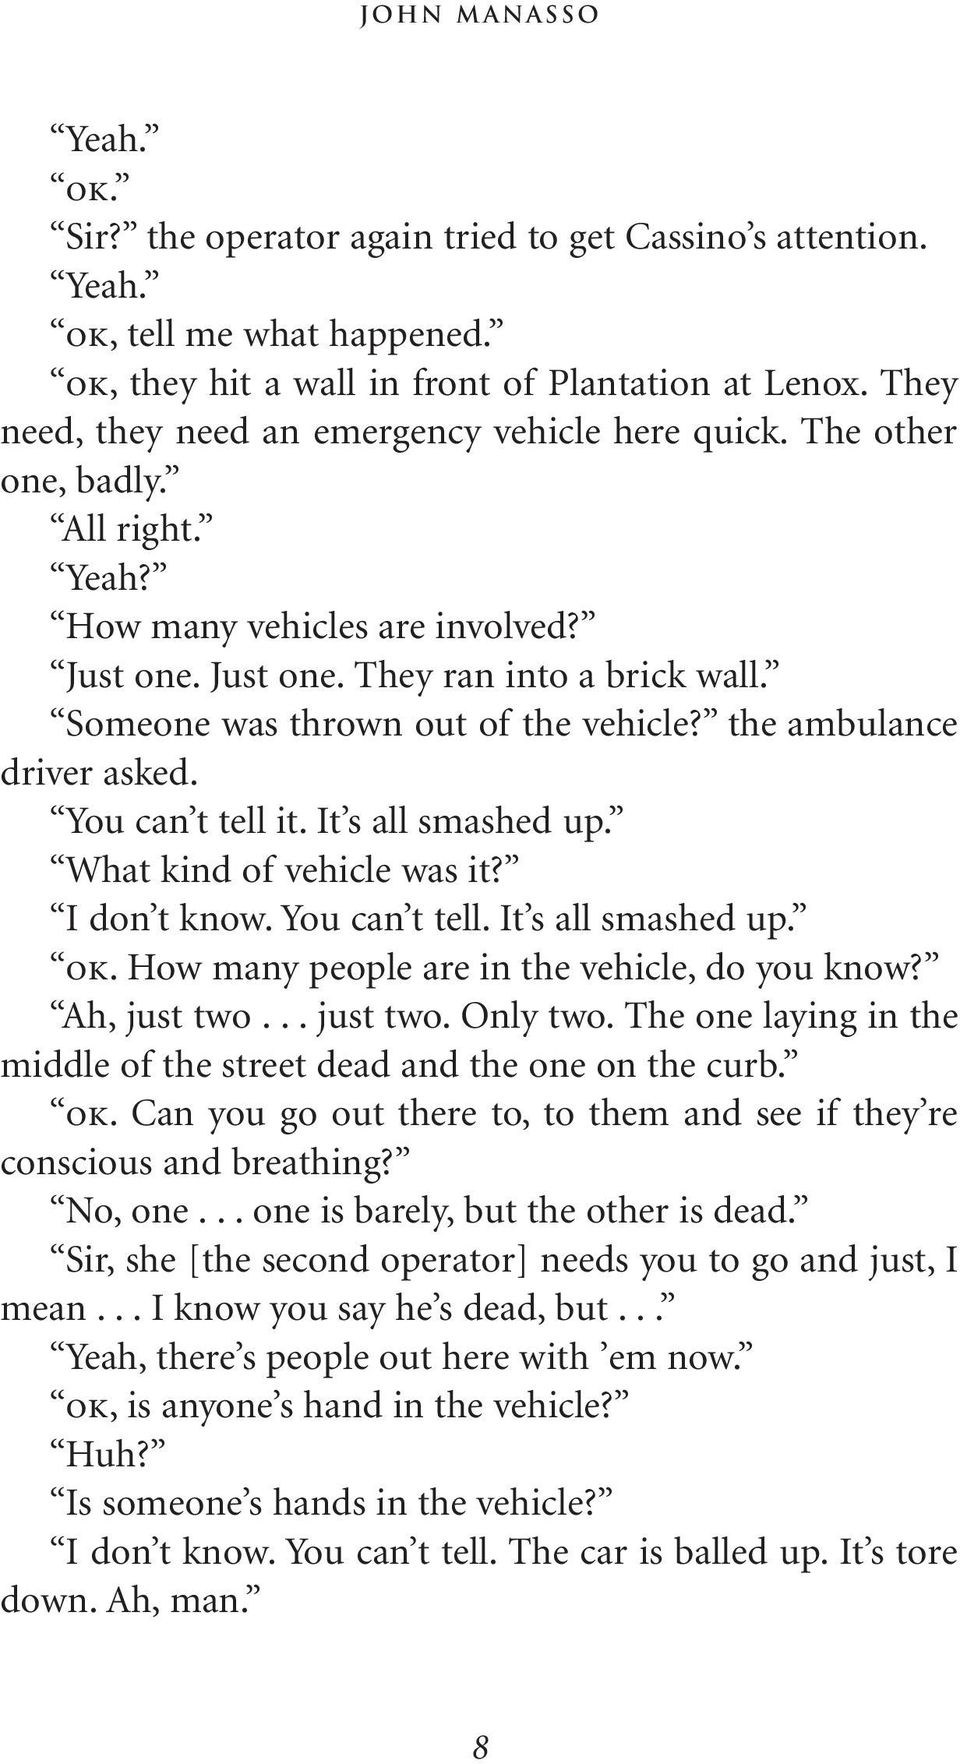 Someone was thrown out of the vehicle? the ambulance driver asked. You can t tell it. It s all smashed up. What kind of vehicle was it? I don t know. You can t tell. It s all smashed up. ok.